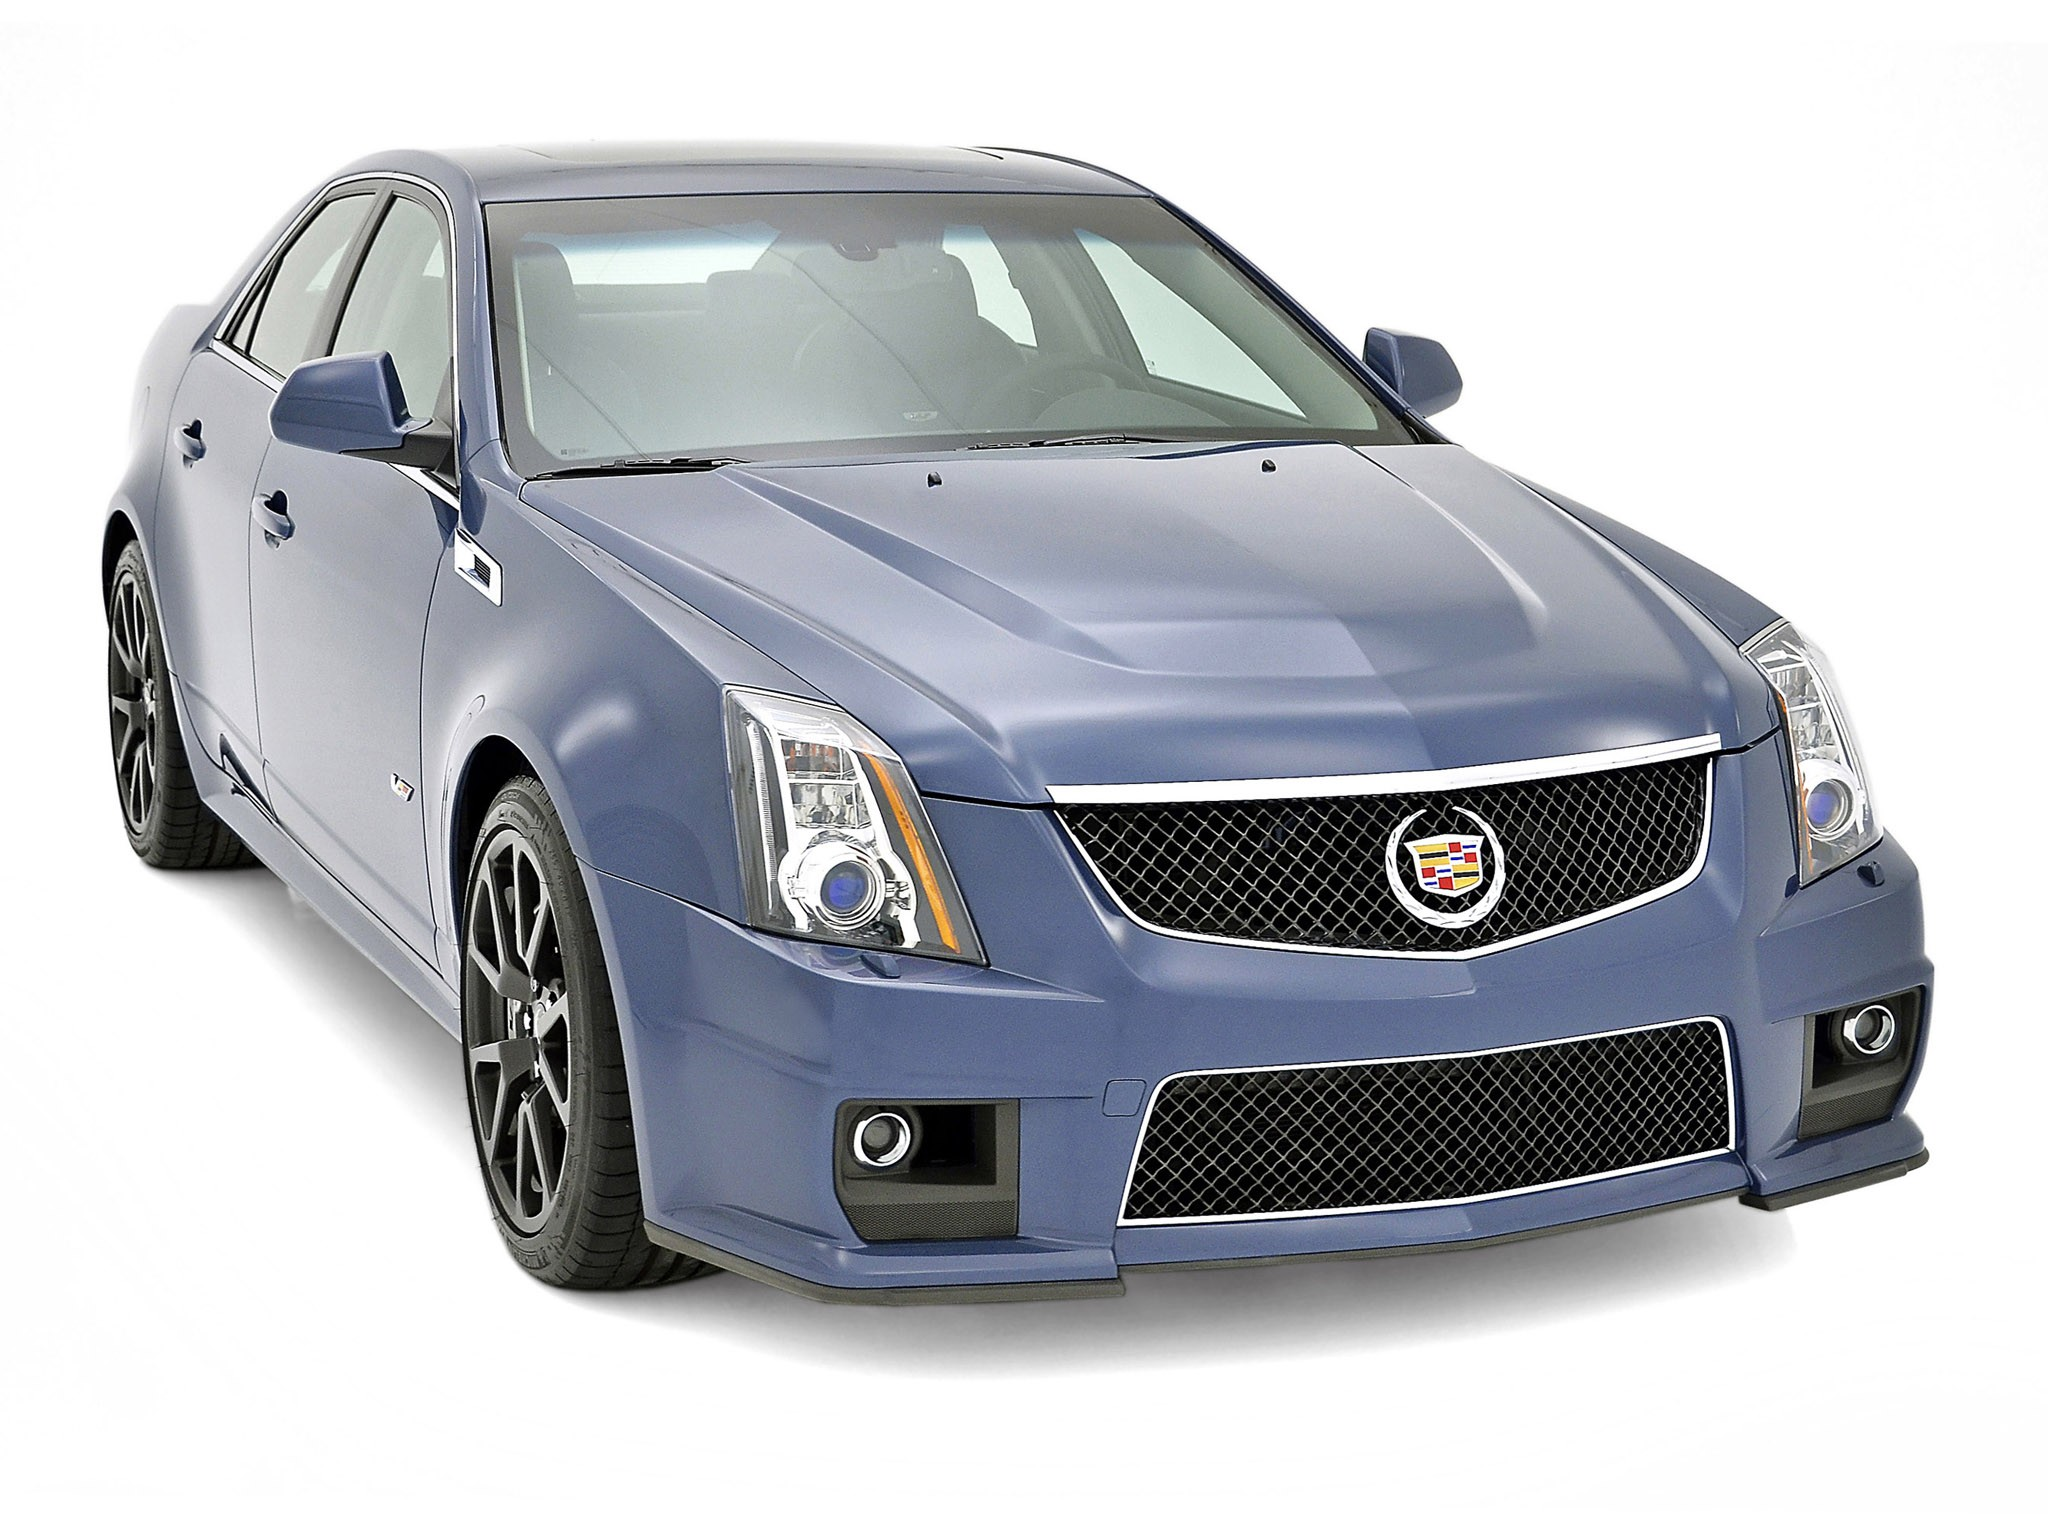 2013 Cadillac TS-V Stealth Blue Edition